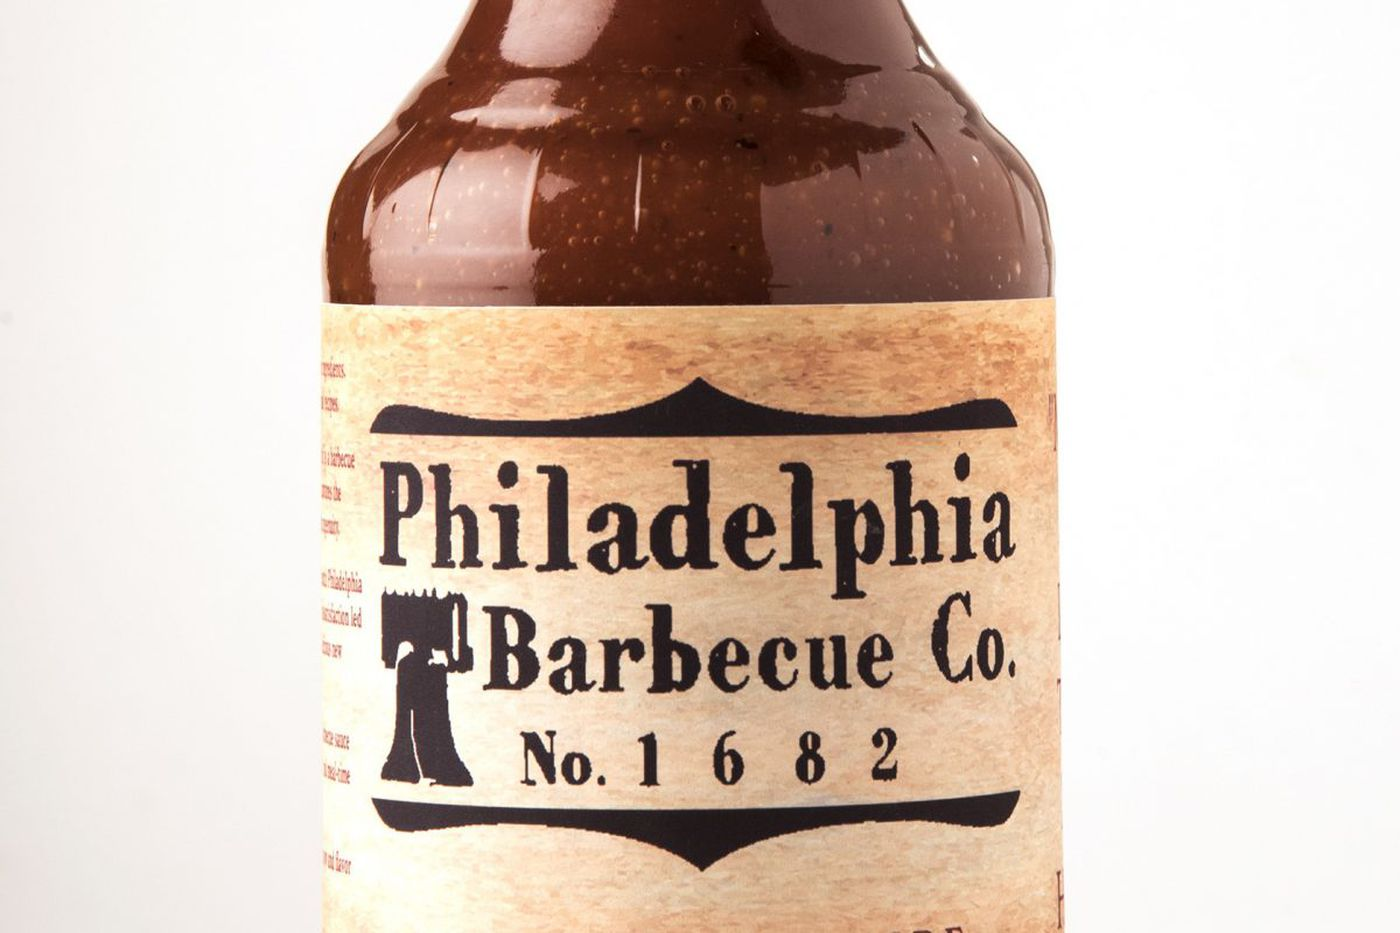 BBQ sauce from South Philly